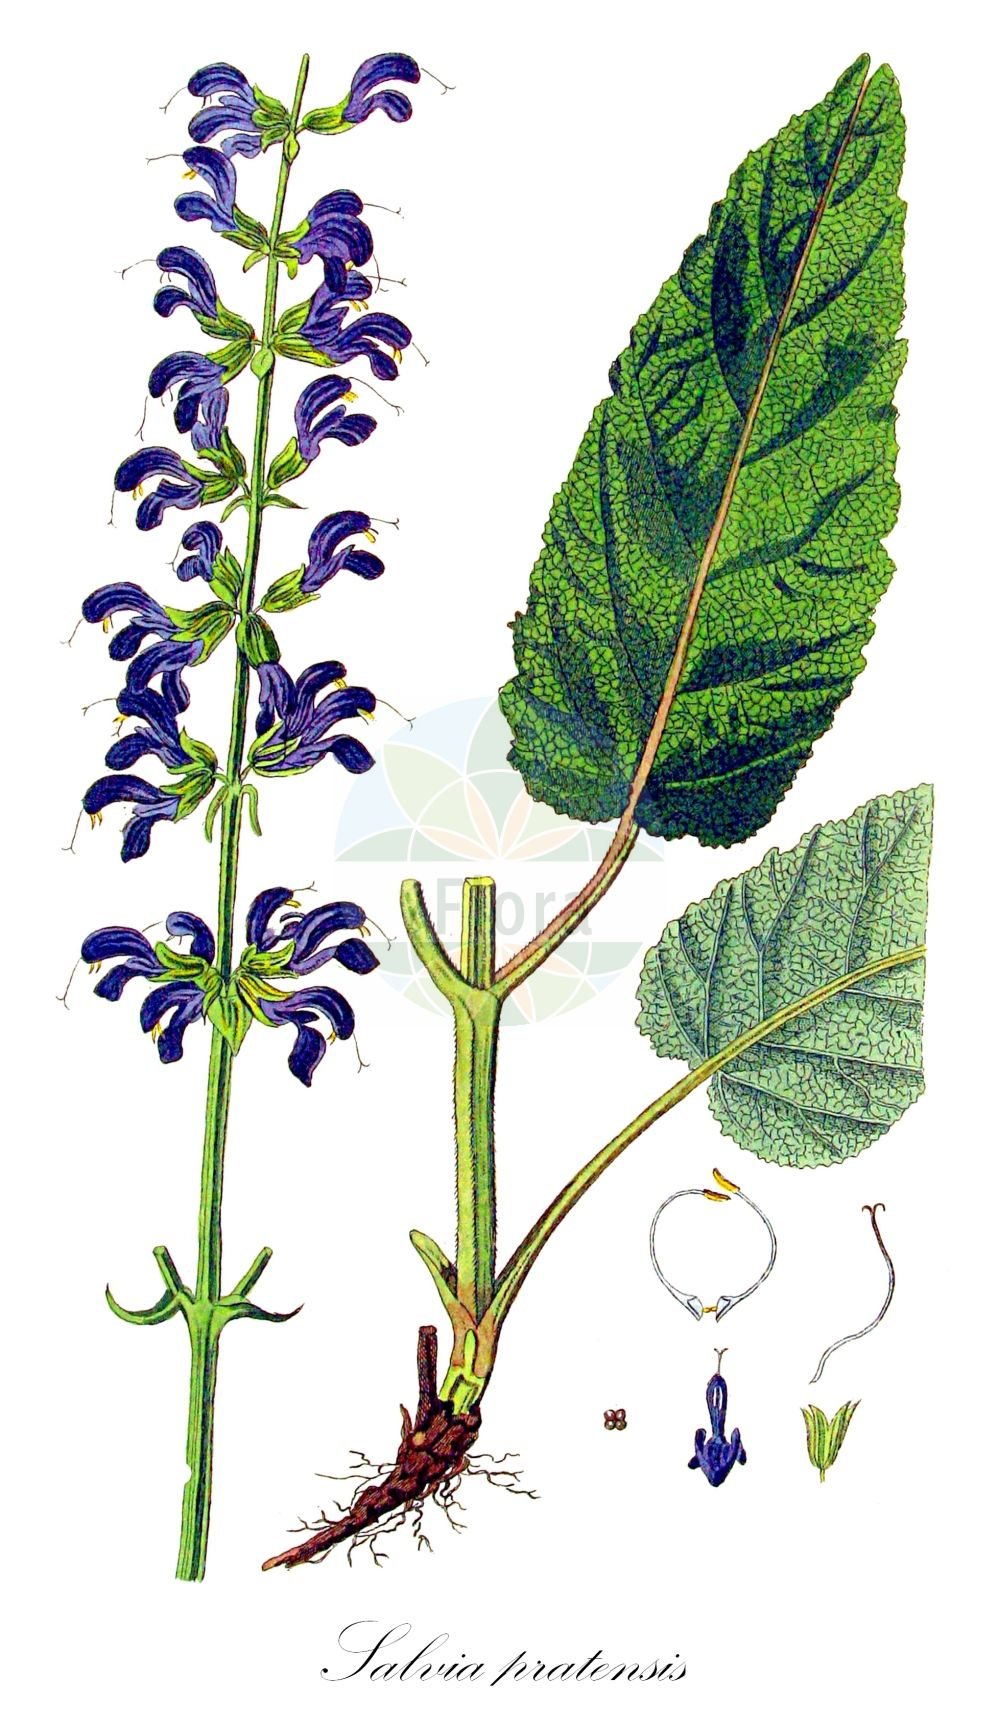 Historische Abbildung von Salvia pratensis (Wiesen-Salbei - Meadow Clary). Das Bild zeigt Blatt, Bluete, Frucht und Same. ---- Historical Drawing of Salvia pratensis (Wiesen-Salbei - Meadow Clary).The image is showing leaf, flower, fruit and seed.(Salvia pratensis,Wiesen-Salbei,Meadow Clary,Gallitrichum pratense,Plethiosphace pratensis,Sclarea pratensis,Introduced Sage,Meadow Sage,Salvia,Salbei,Sage,Lamiaceae,Lippenbluetengewaechse;Lippenbluetler,Nettle family,Blatt,Bluete,Frucht,Same,leaf,flower,fruit,seed,Kops (1800-1934))